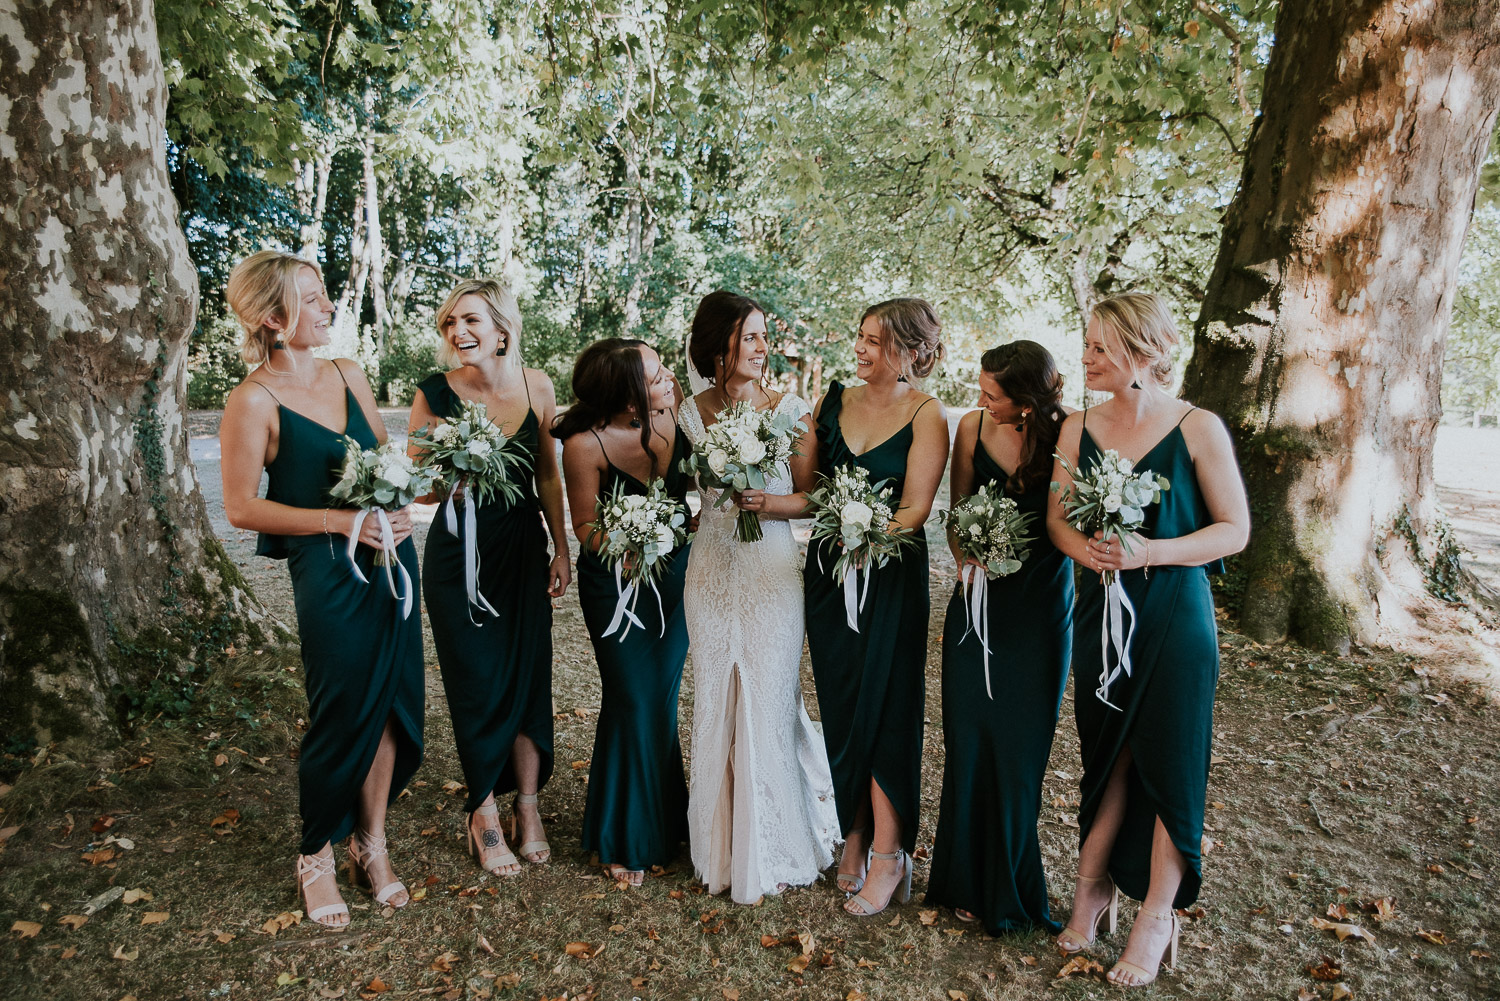 bergerac_wedding_katy_webb_photography_france_UK112